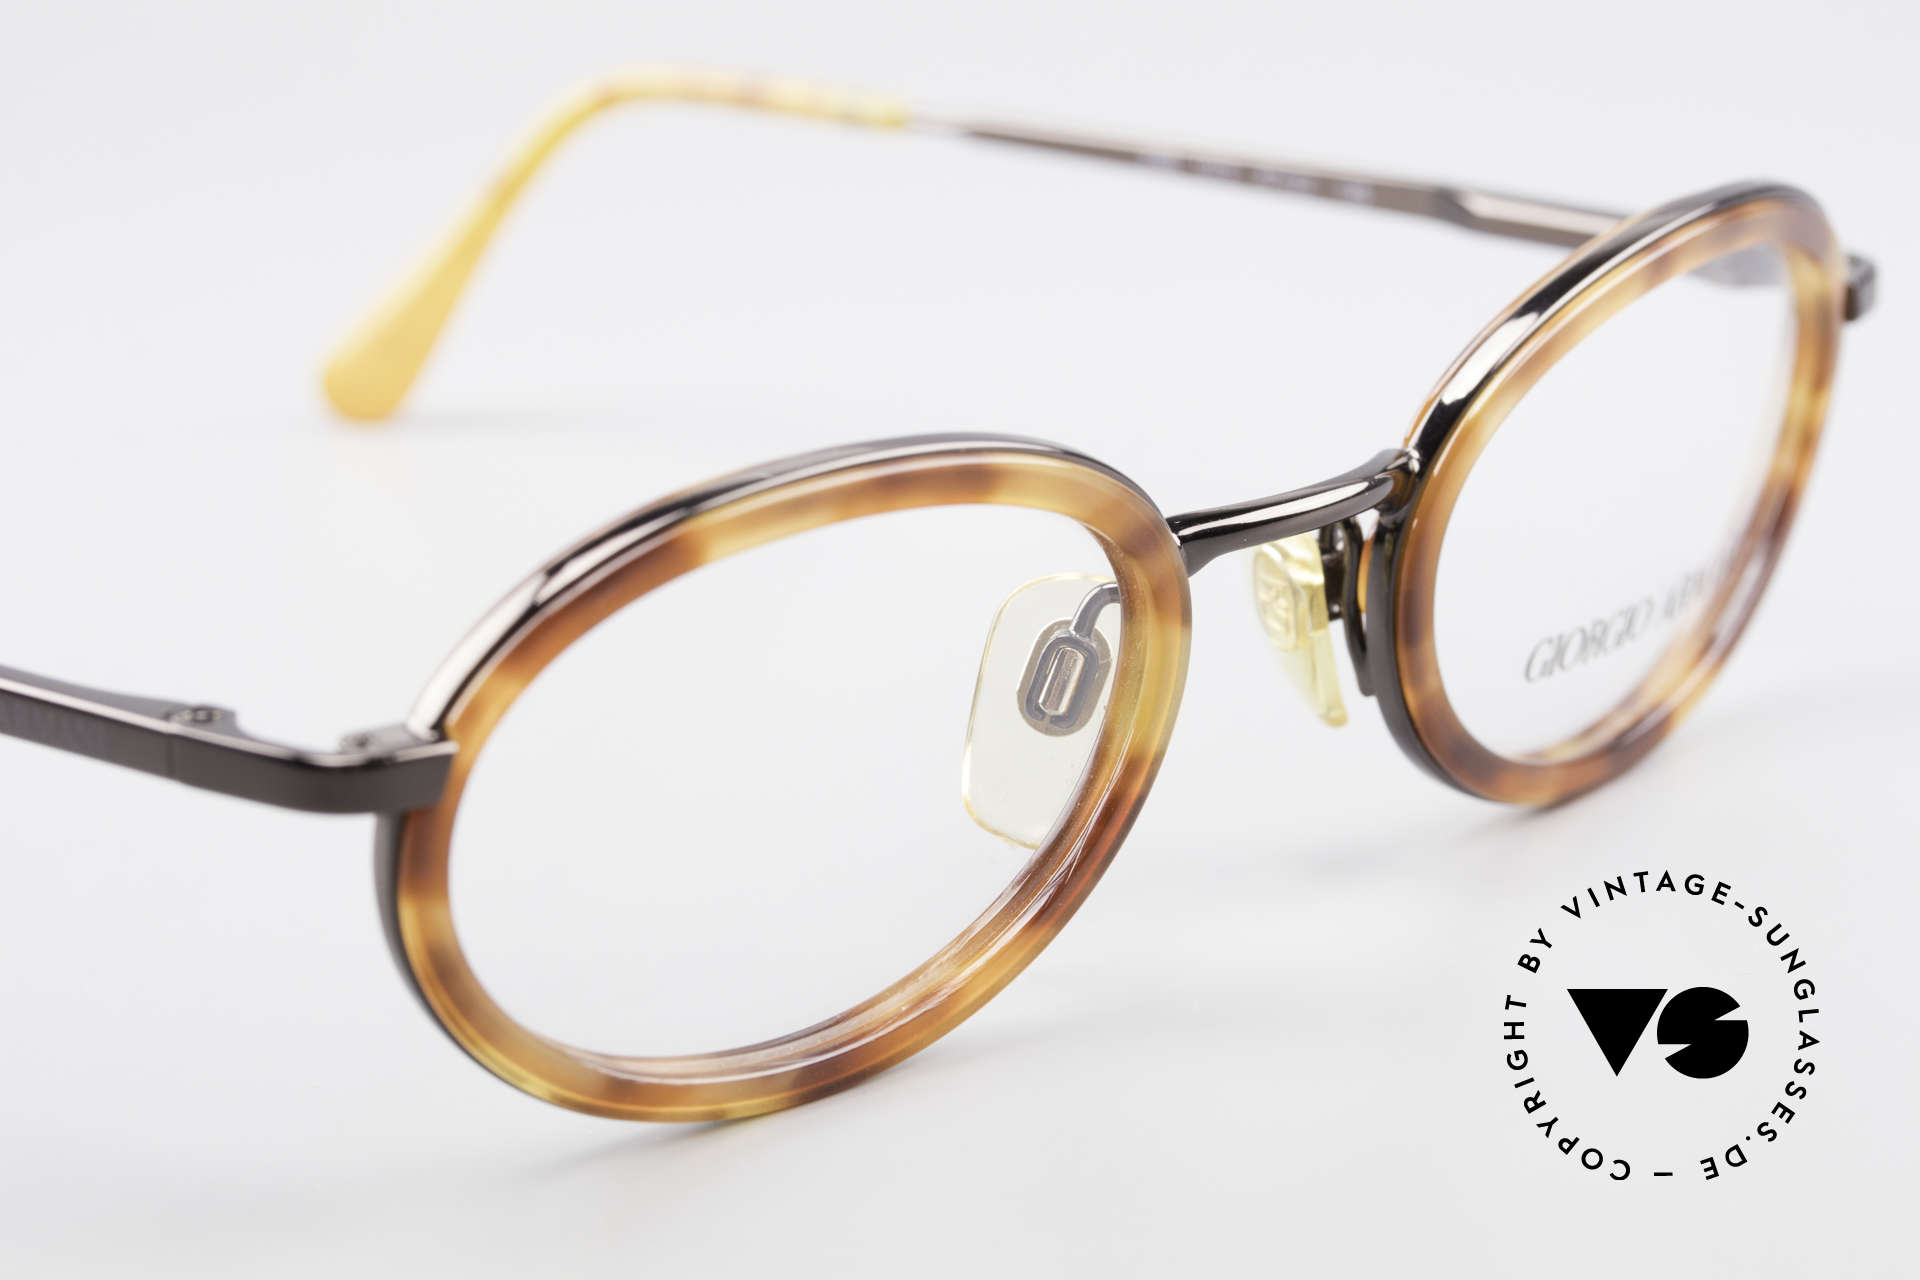 Giorgio Armani 258 90's Oval Vintage Eyeglasses, NO RETRO FRAME, but an app. 25 years old ORIGINAL, Made for Men and Women